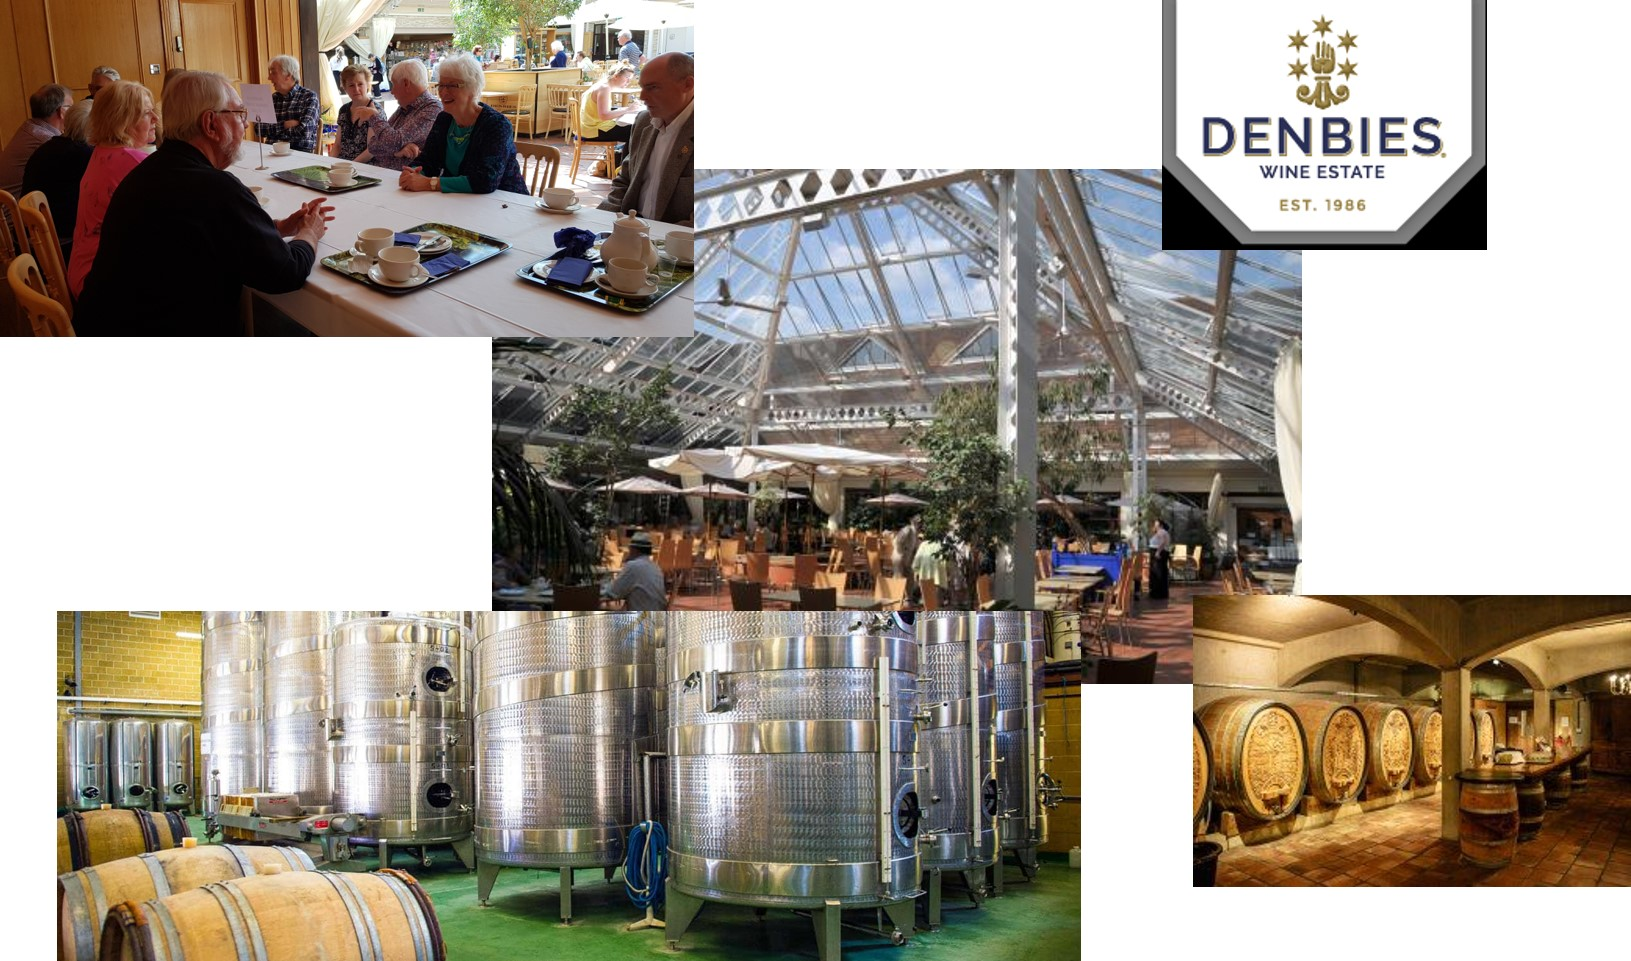 tour of denbies winery